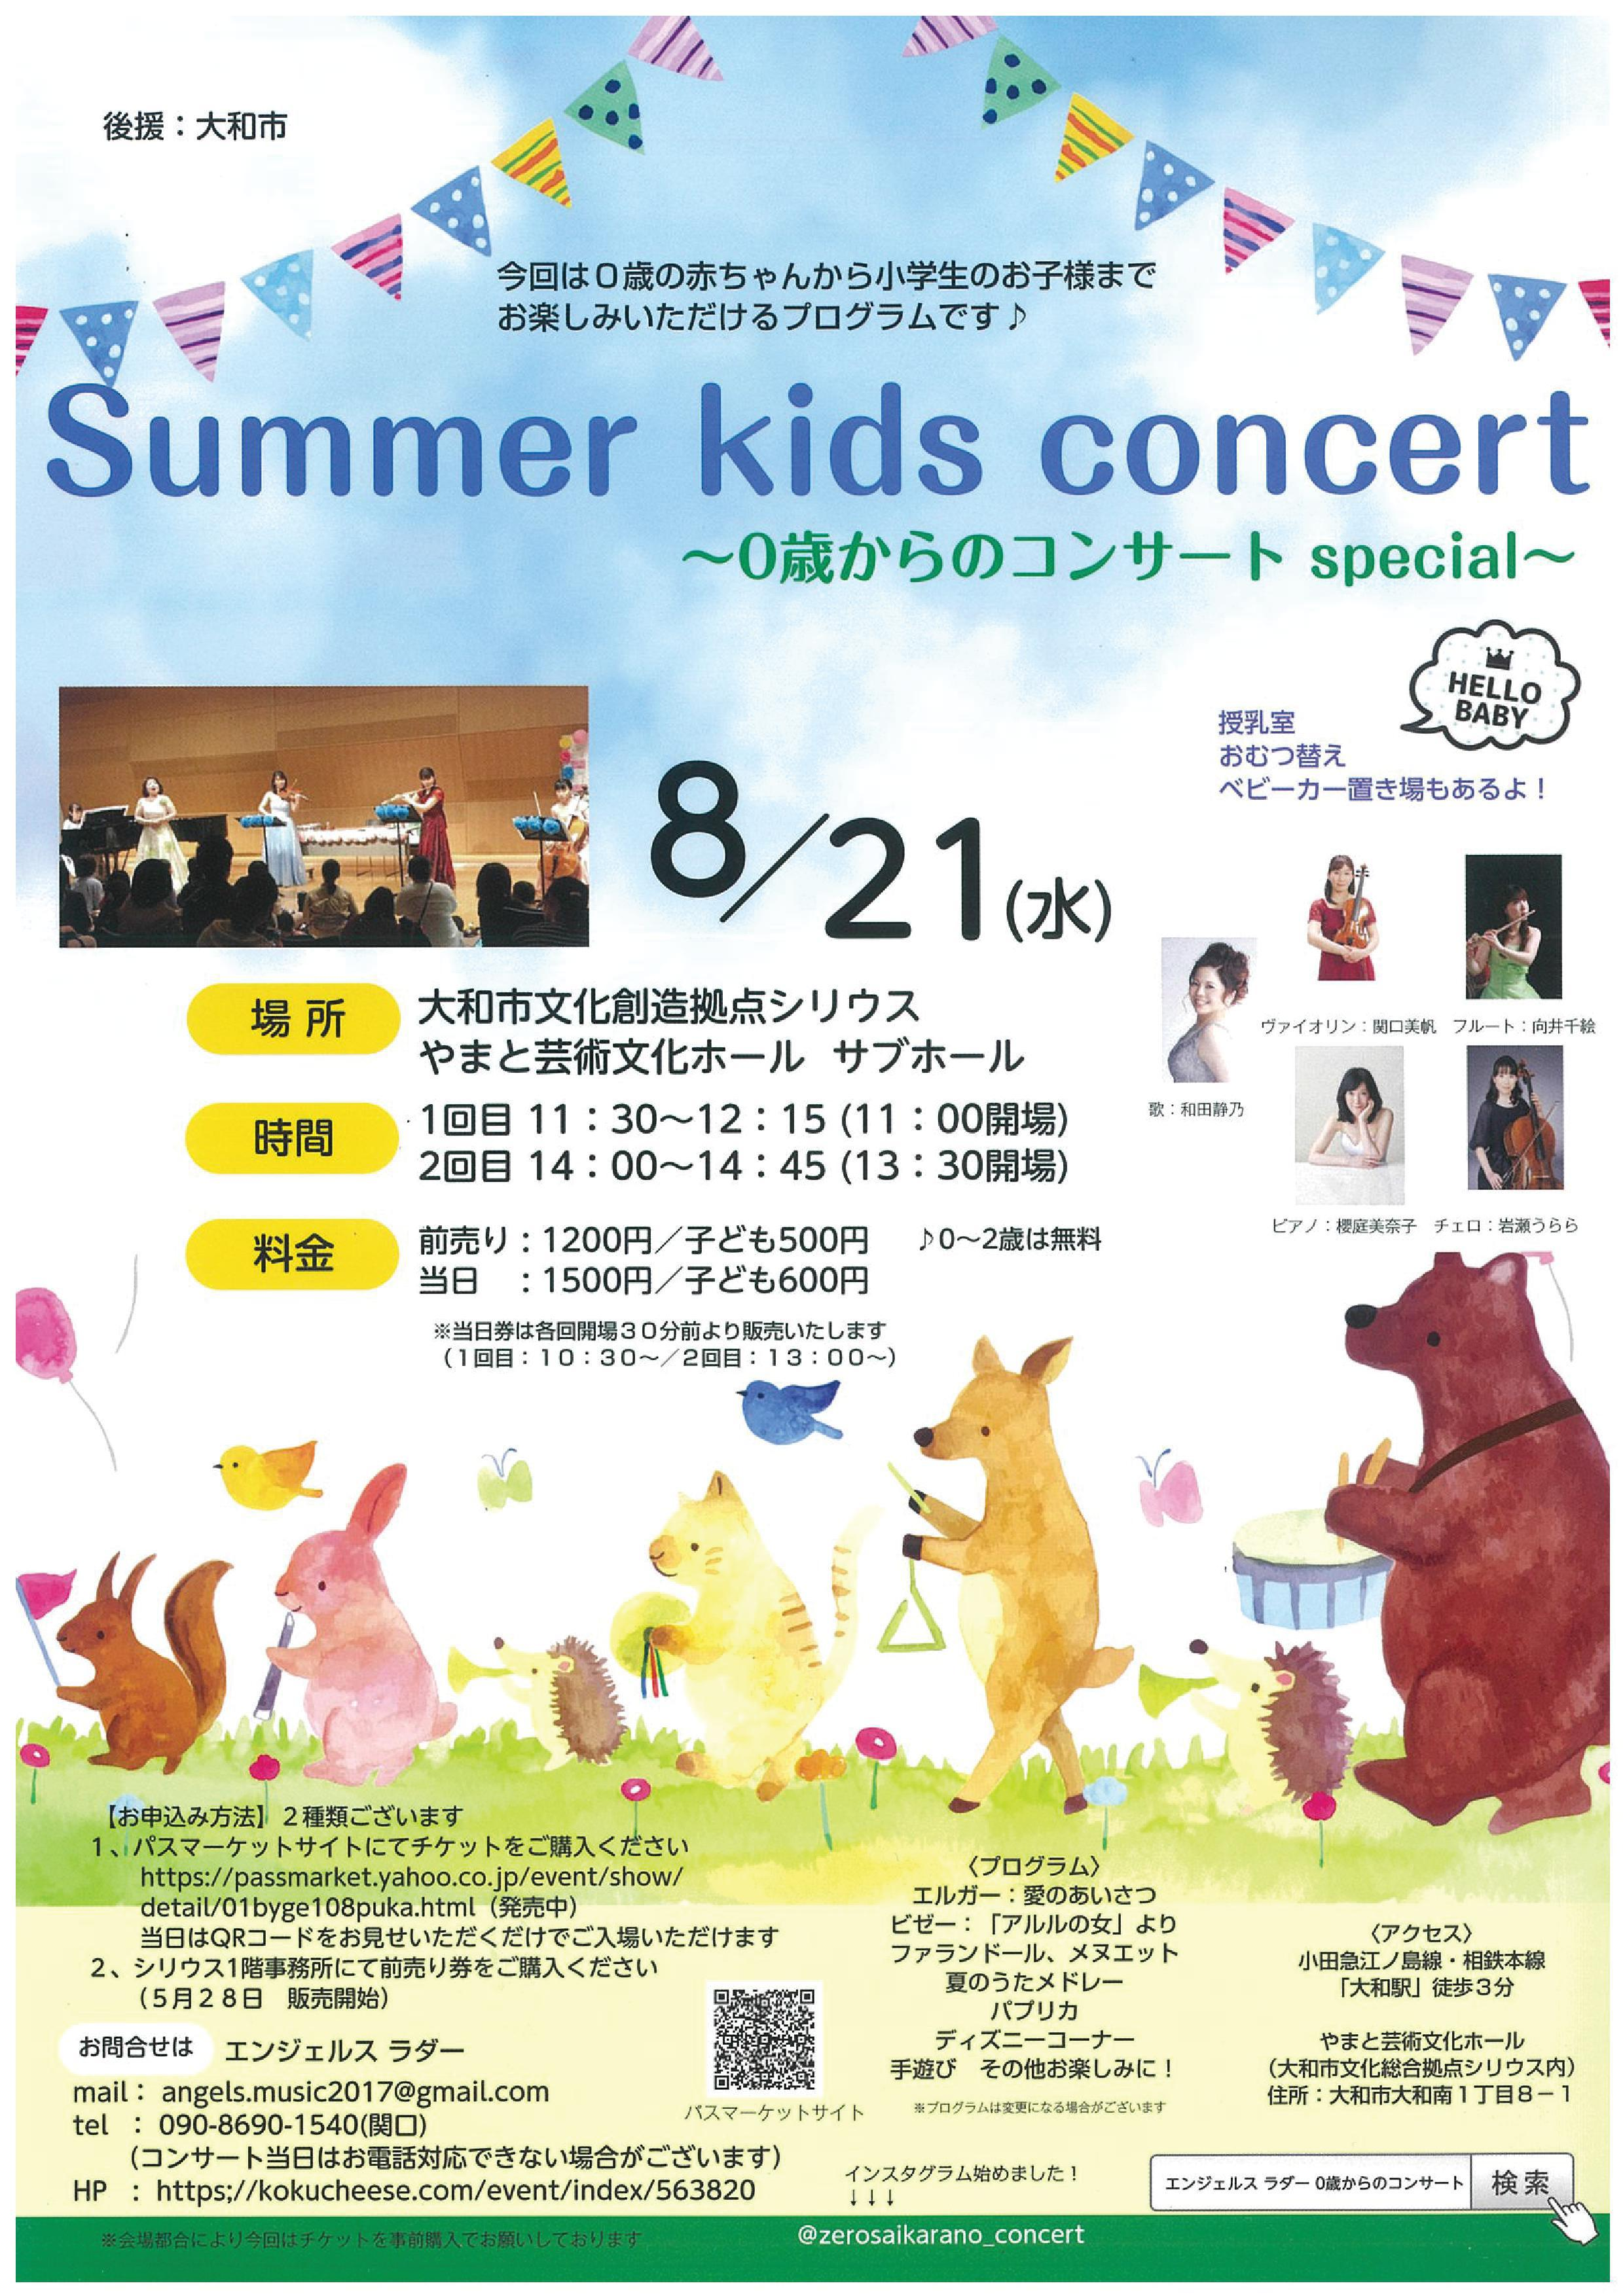 Summer kids concert ~0歳からのコンサート special~